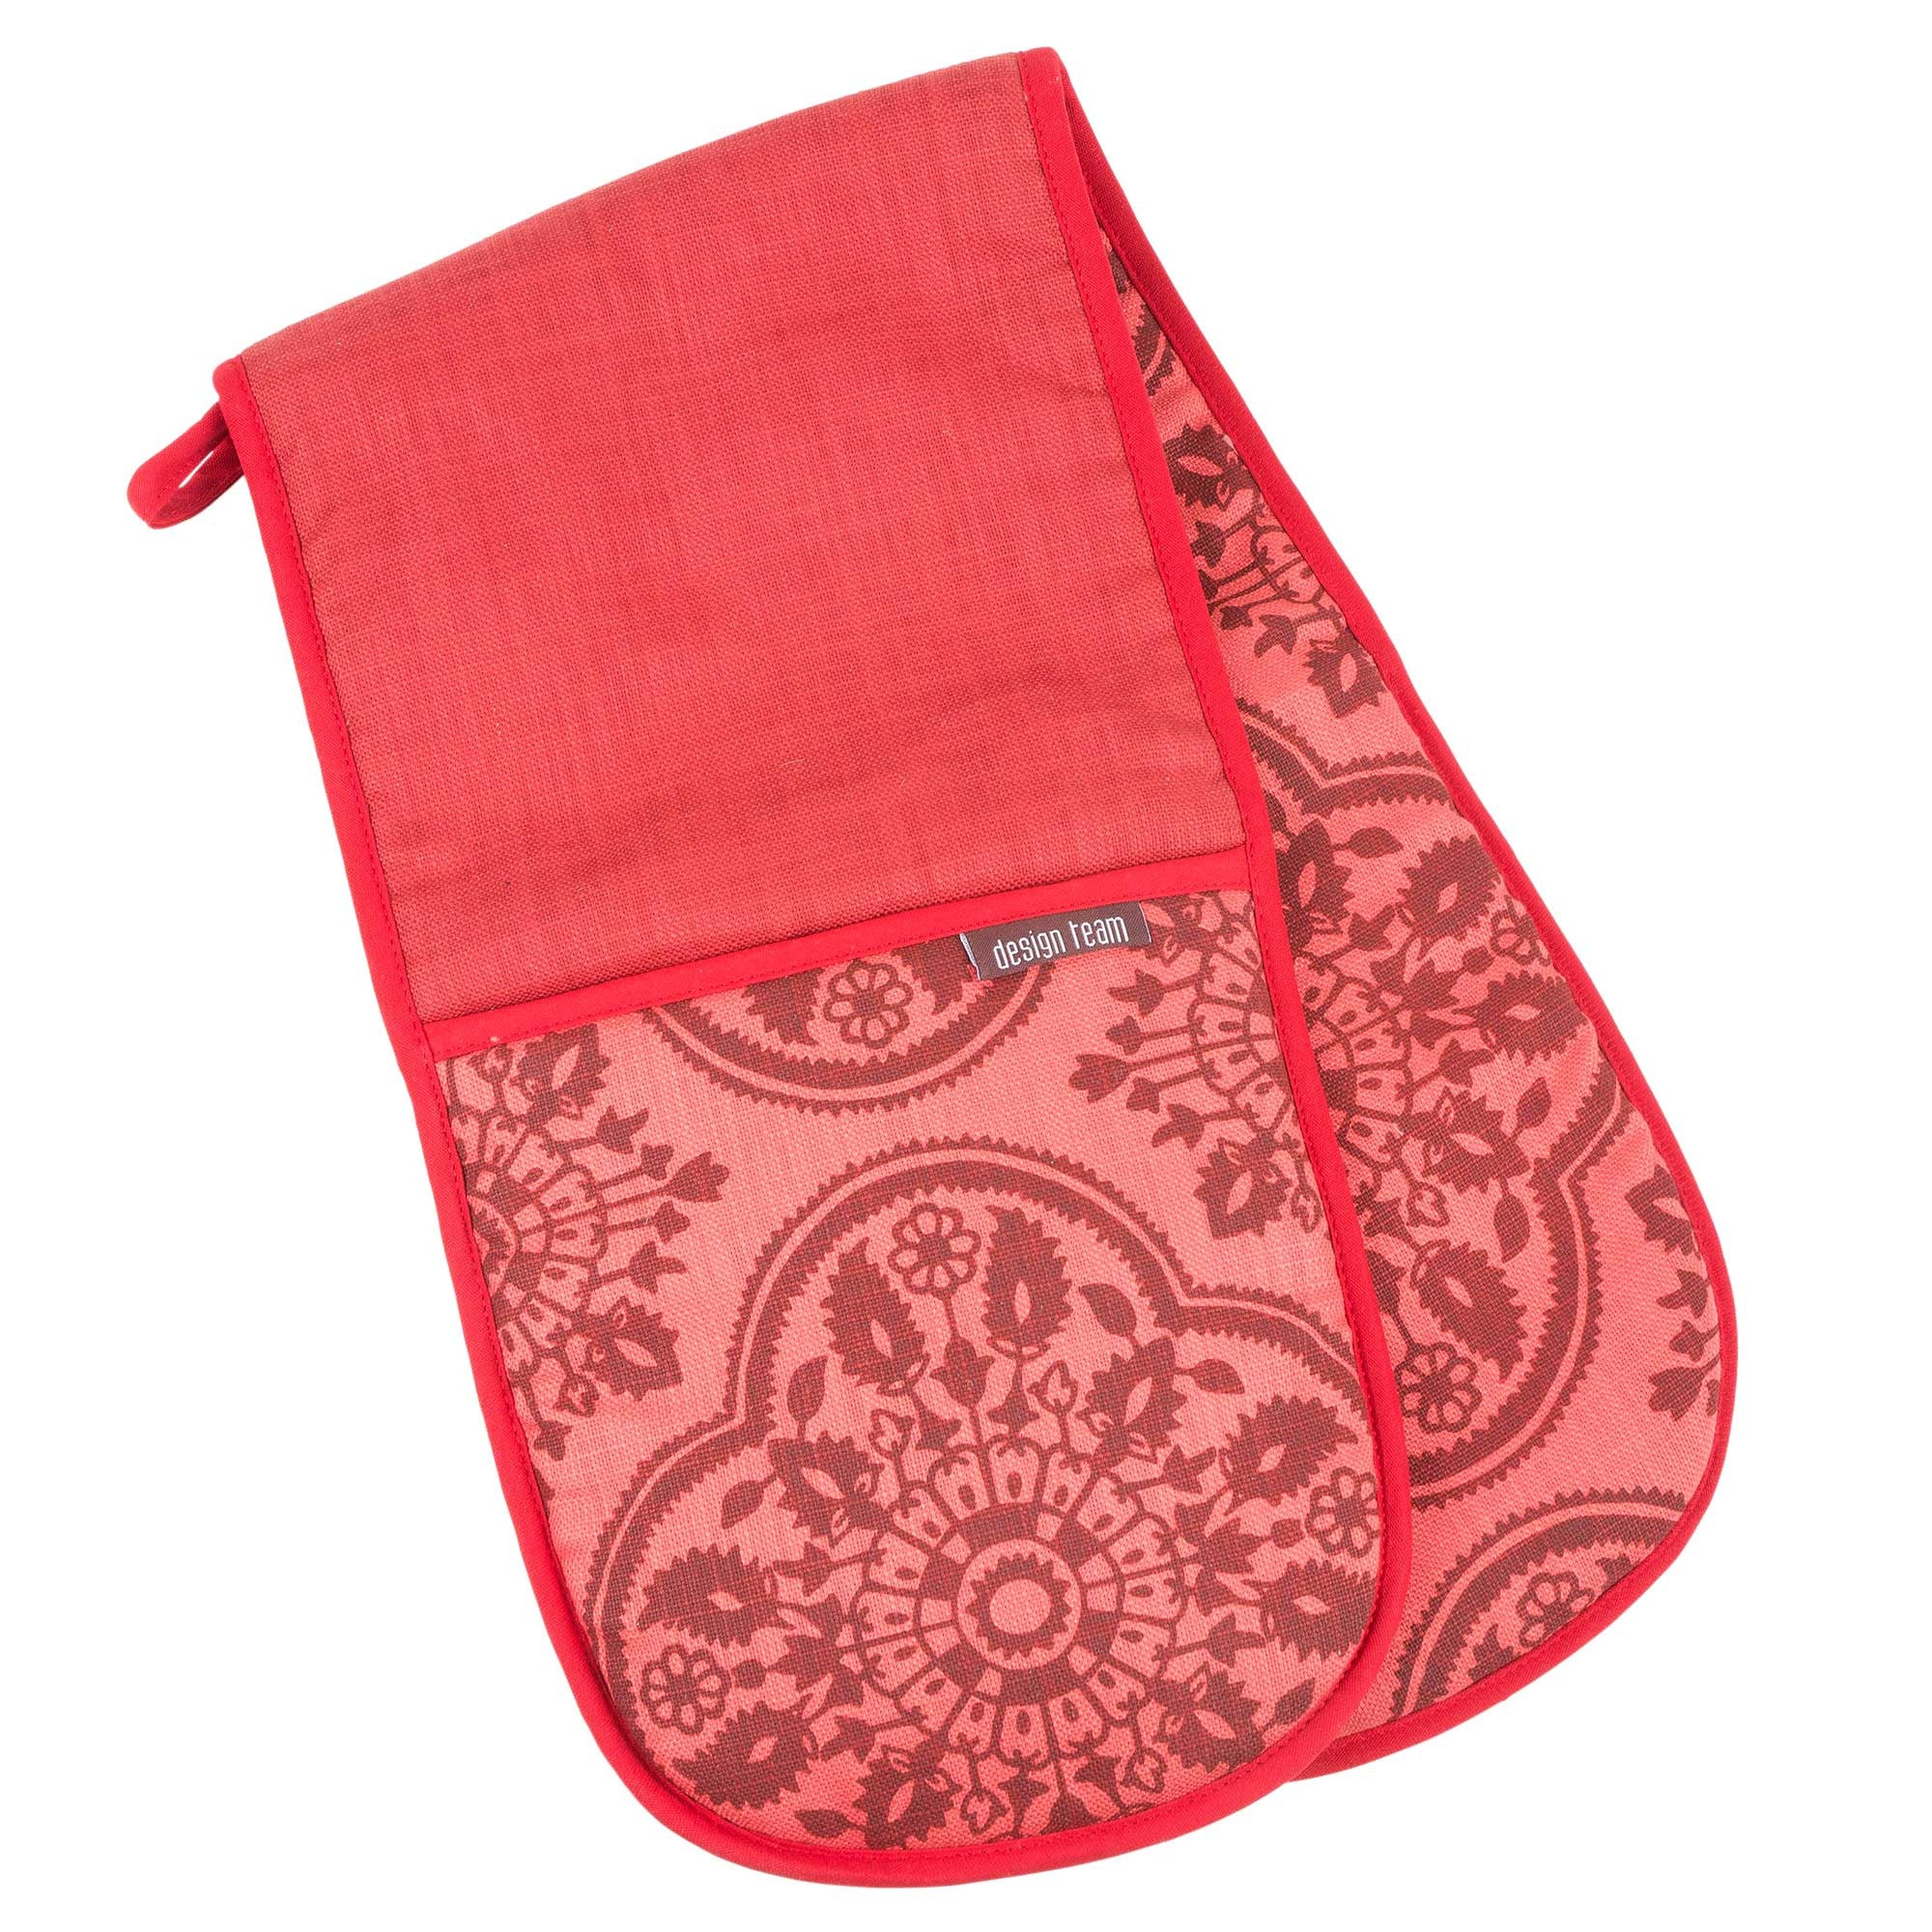 Red Keswick oven gloves